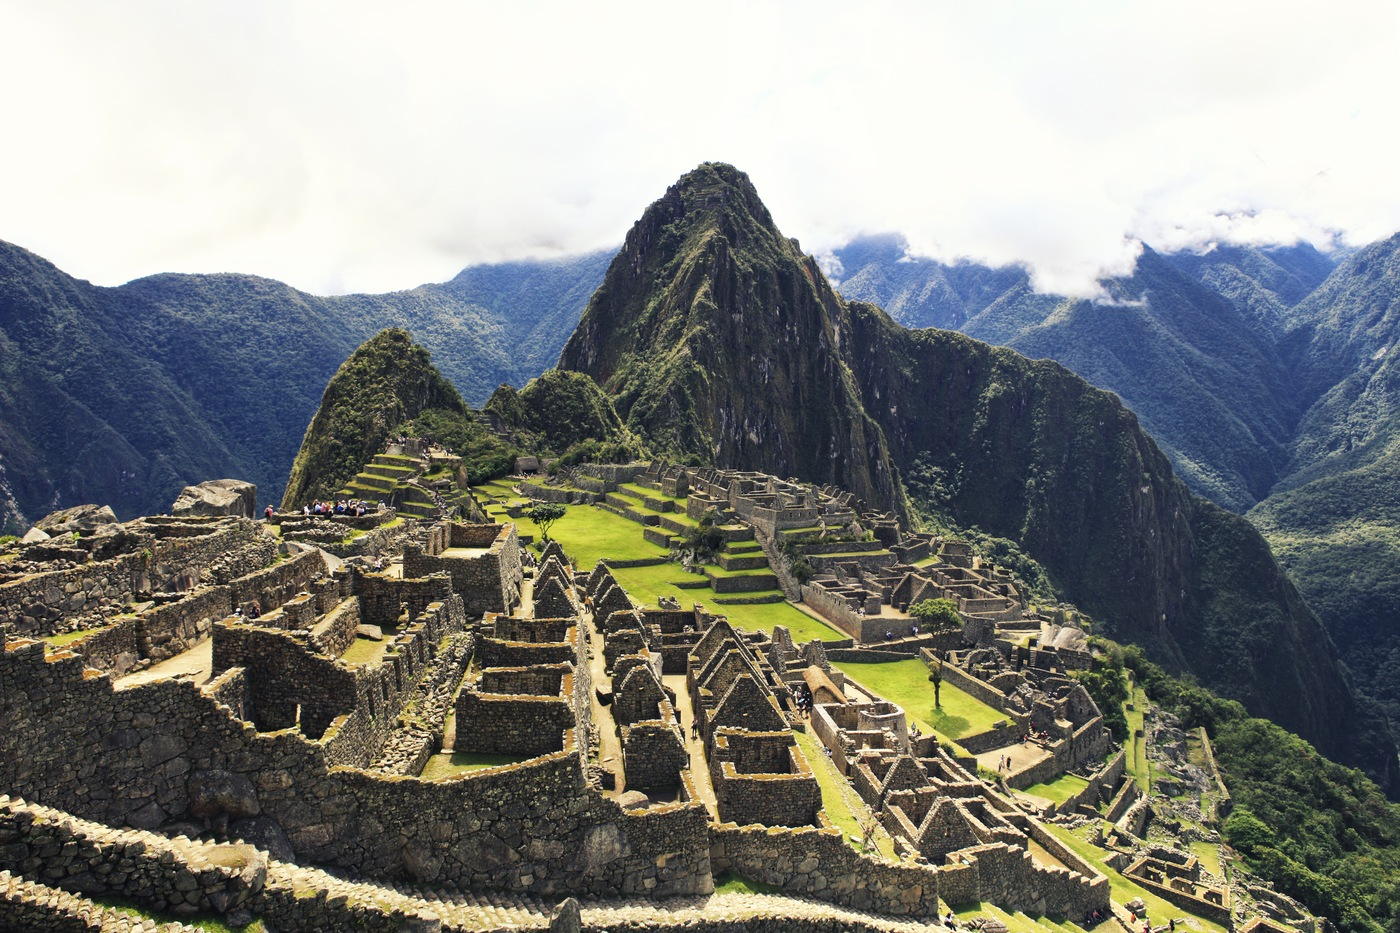 Machu Picchu 20 travel bucket list ideas to do before 40 20 Travel Bucket List Ideas To do before 40 machu picchu 52b1